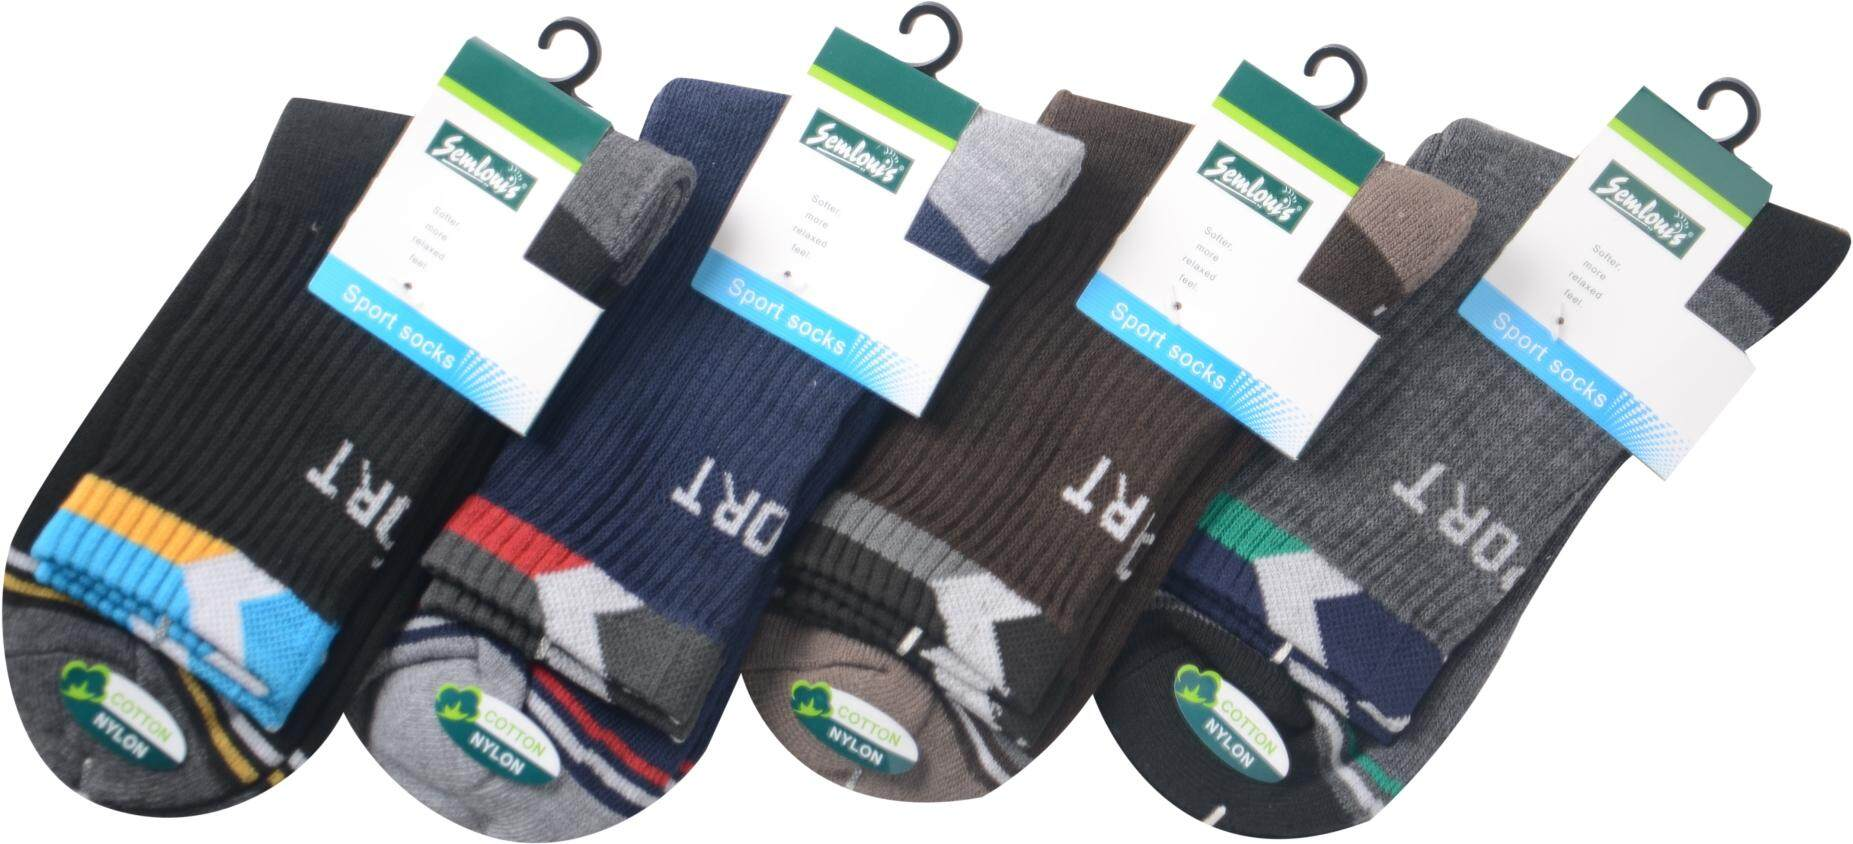 Semlouis Quarter Crew Sport Socks with Cushion Base - Assorted / PAIR